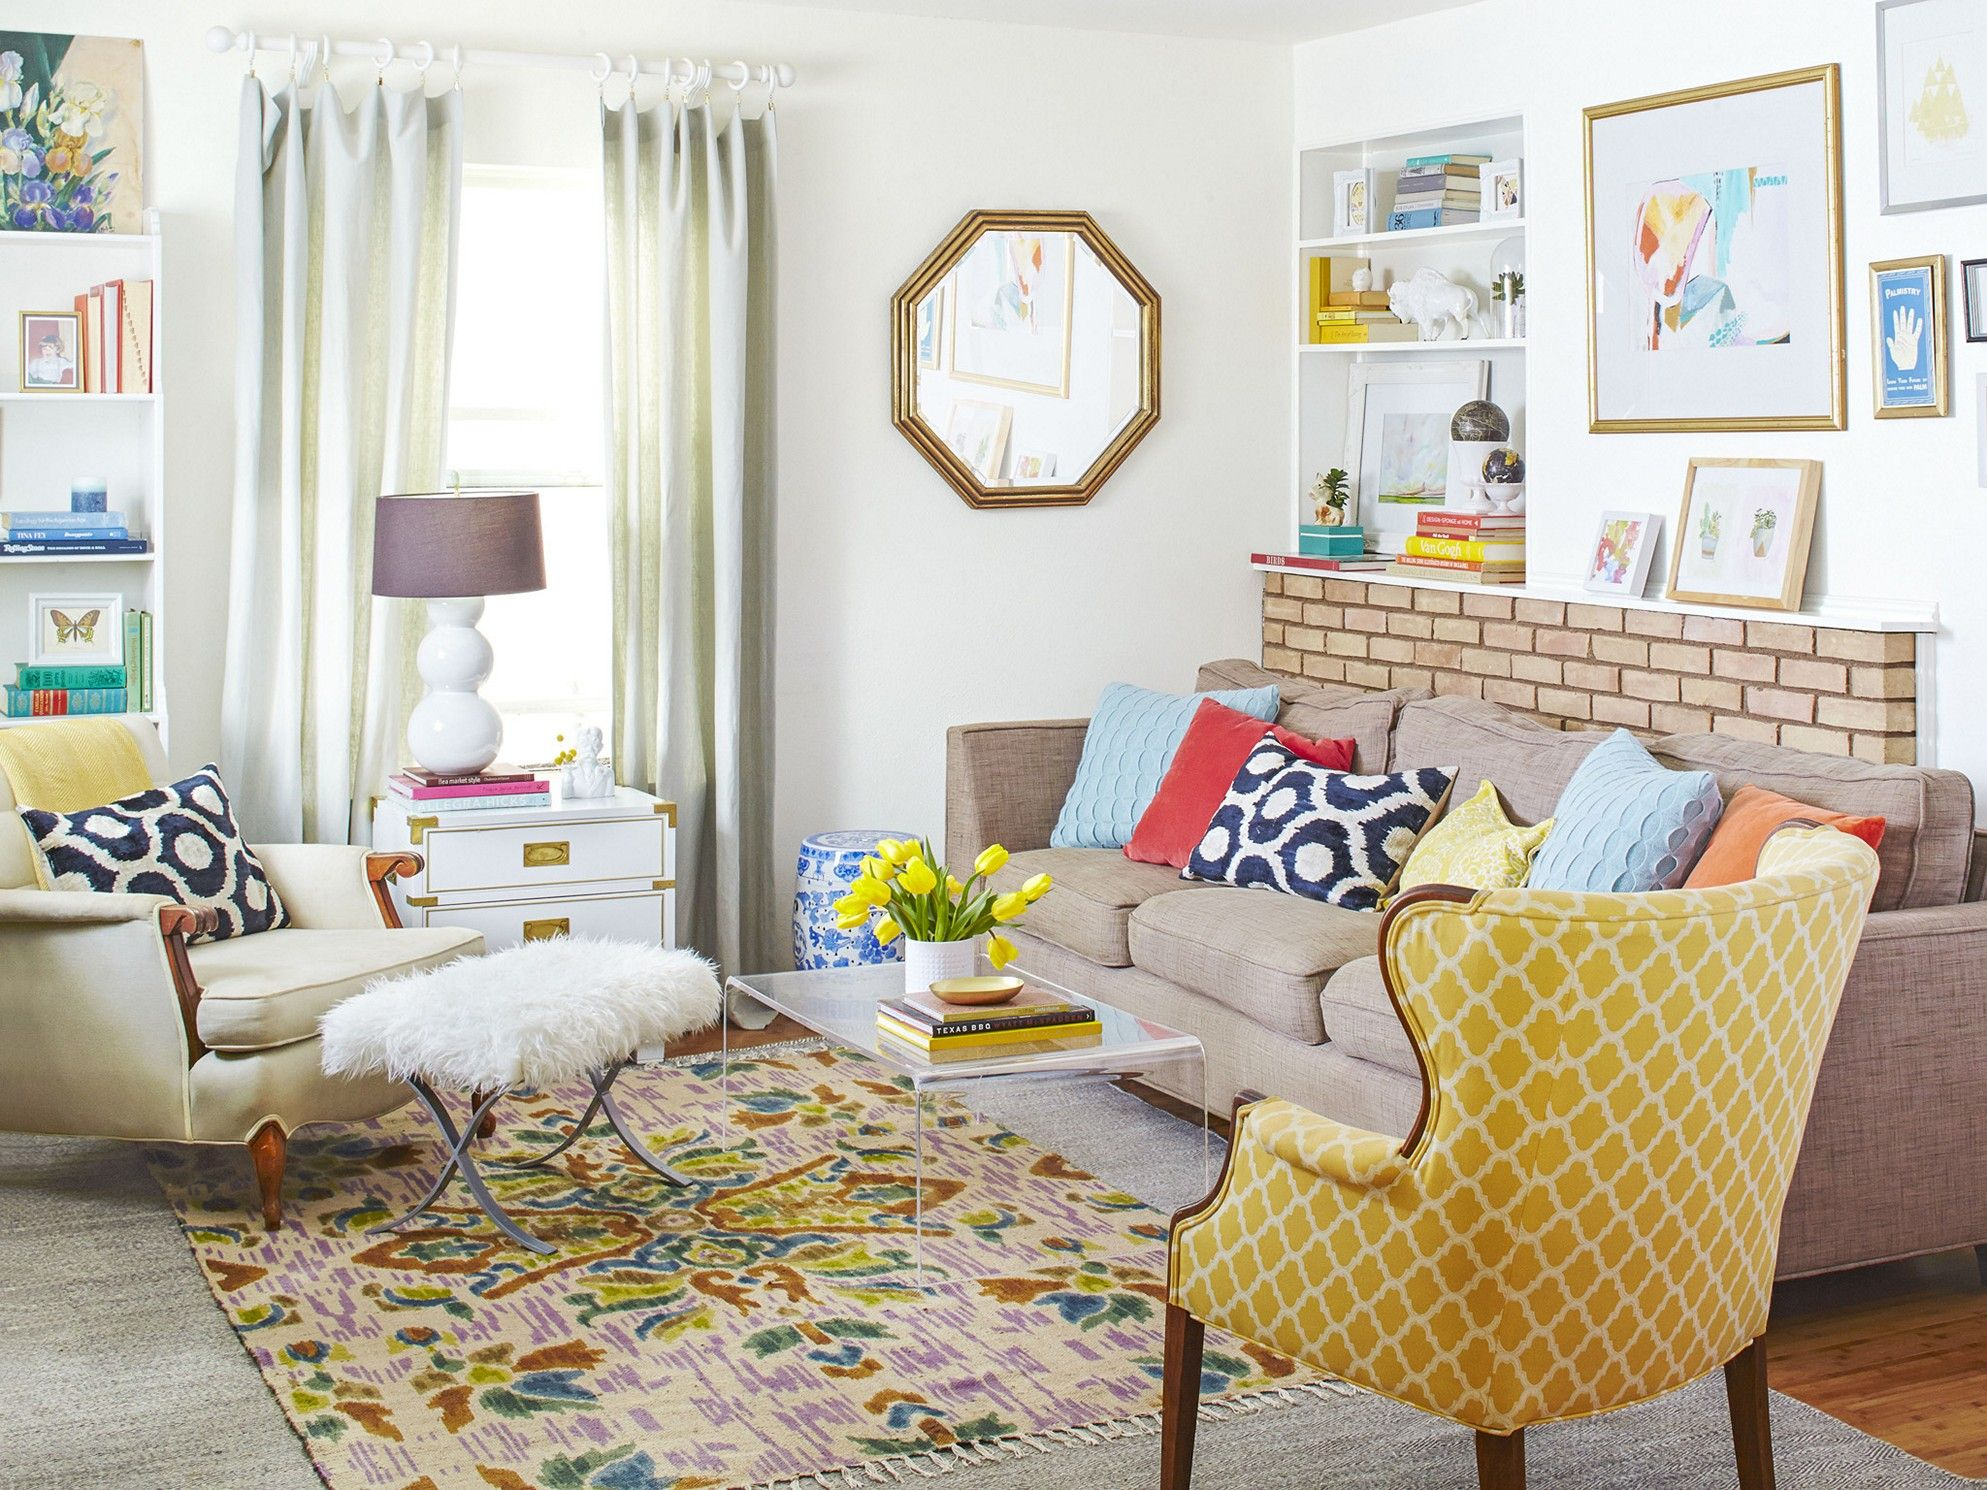 Eclectic Living Room | Eclectic Living Room Decor